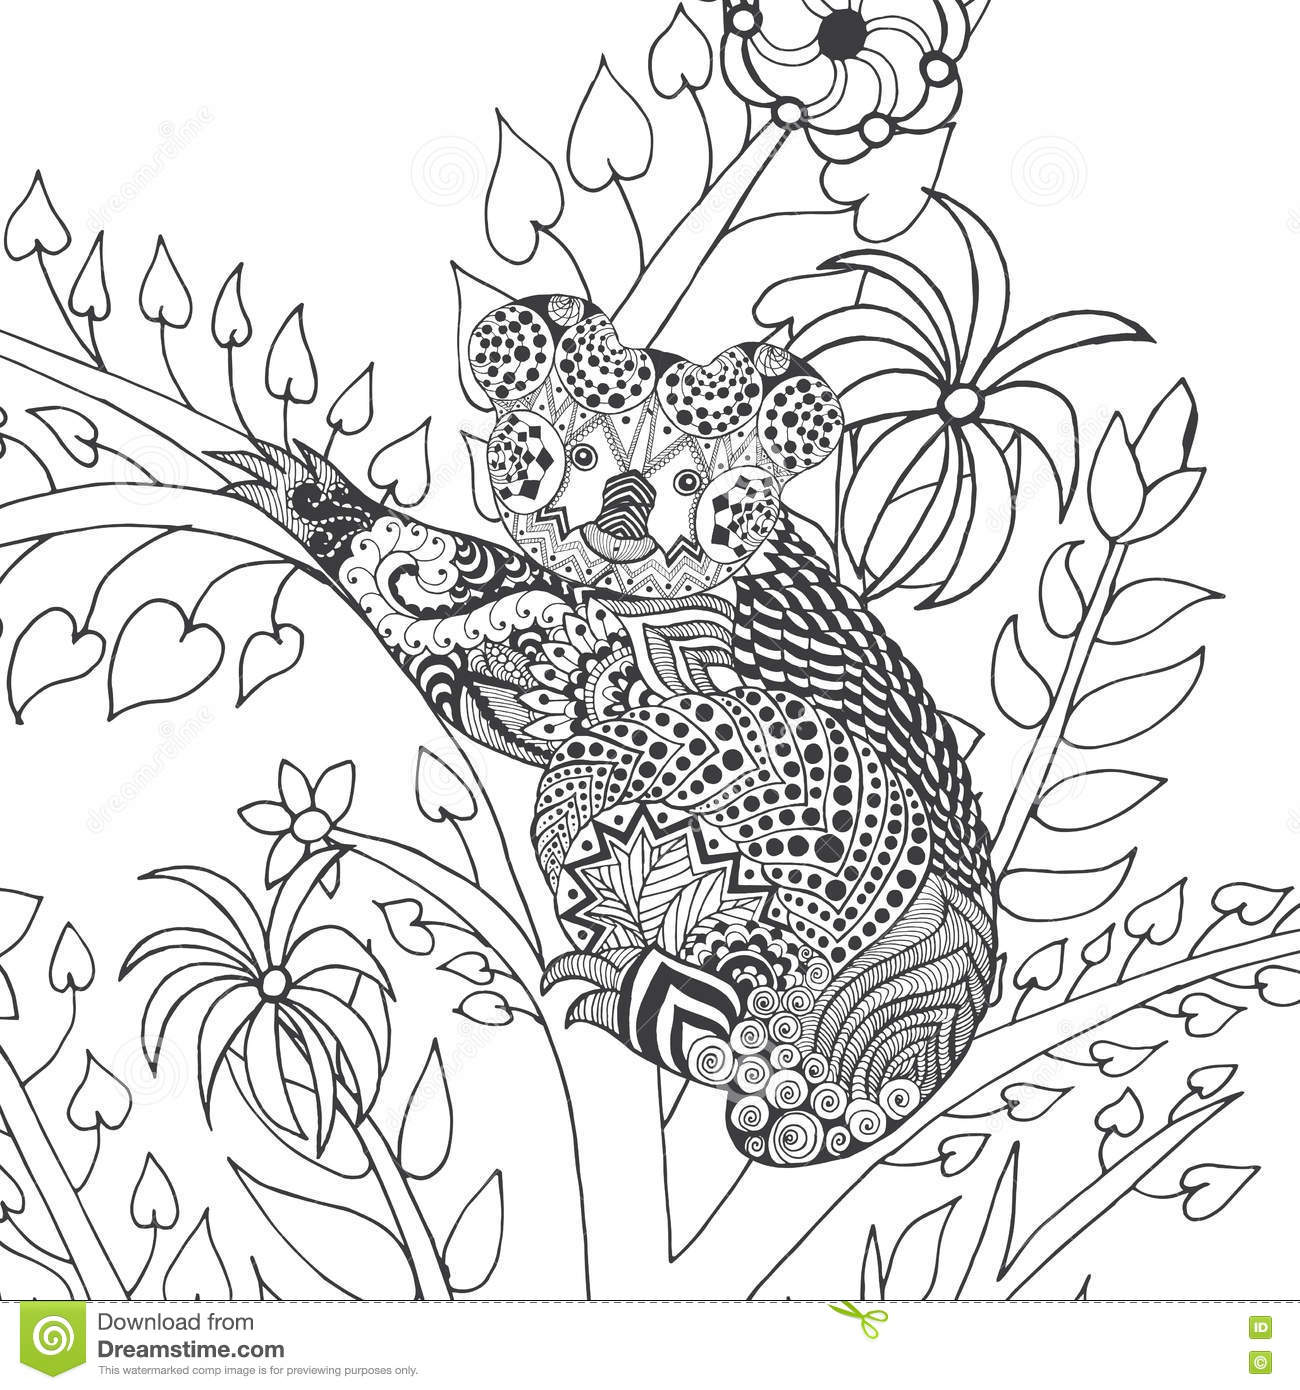 Koala On Tree Coloring Page. Stock Vector - Illustration of african ...